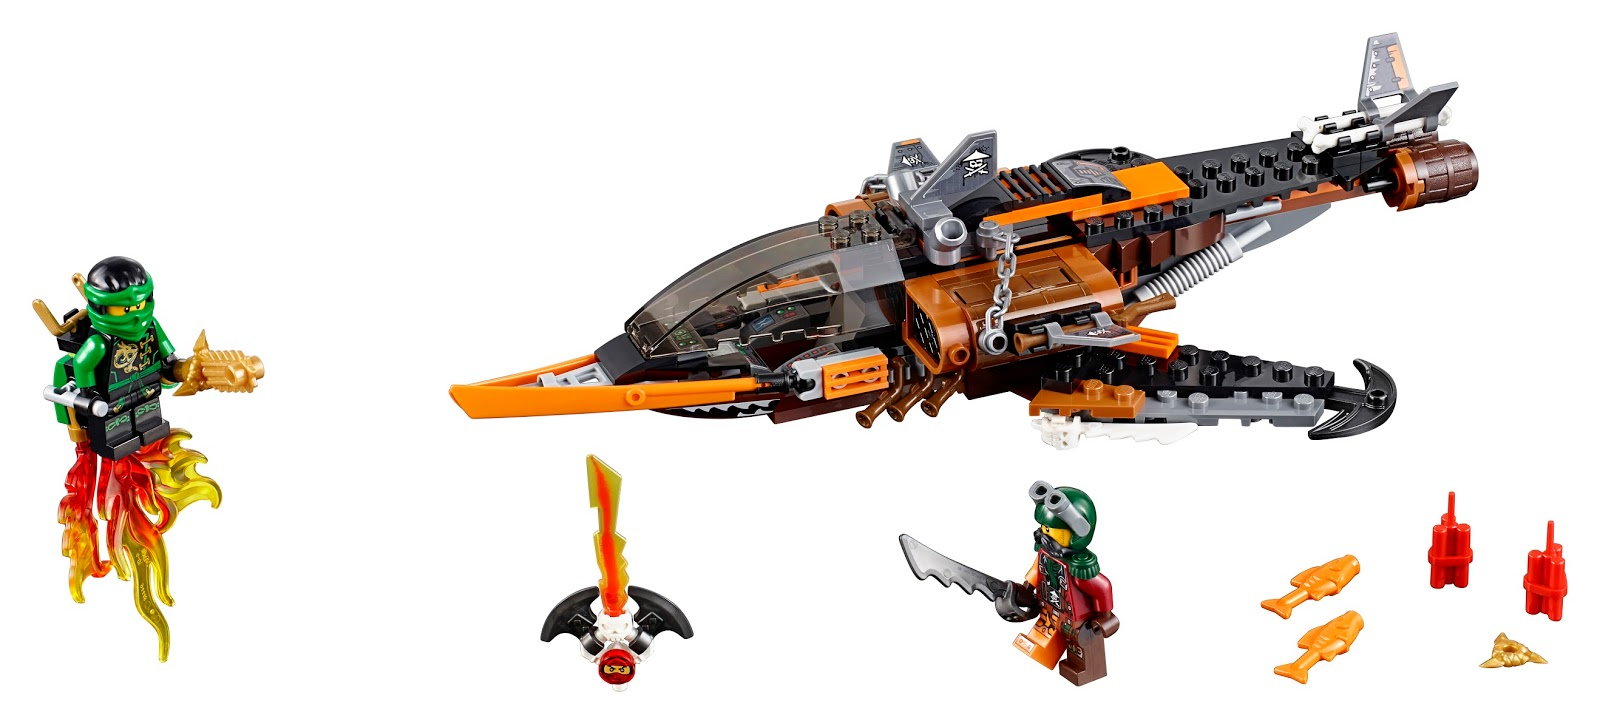 The Brick Bucket Thoughts On March 2016 Ninjago Sets Lego 70605 Misfortunes Keep Despite Slightly Smaller Piece Count I Think This Set Is Far Superior To Previous One Which Shares Its Price Point 70601 Has A Better Selection Of